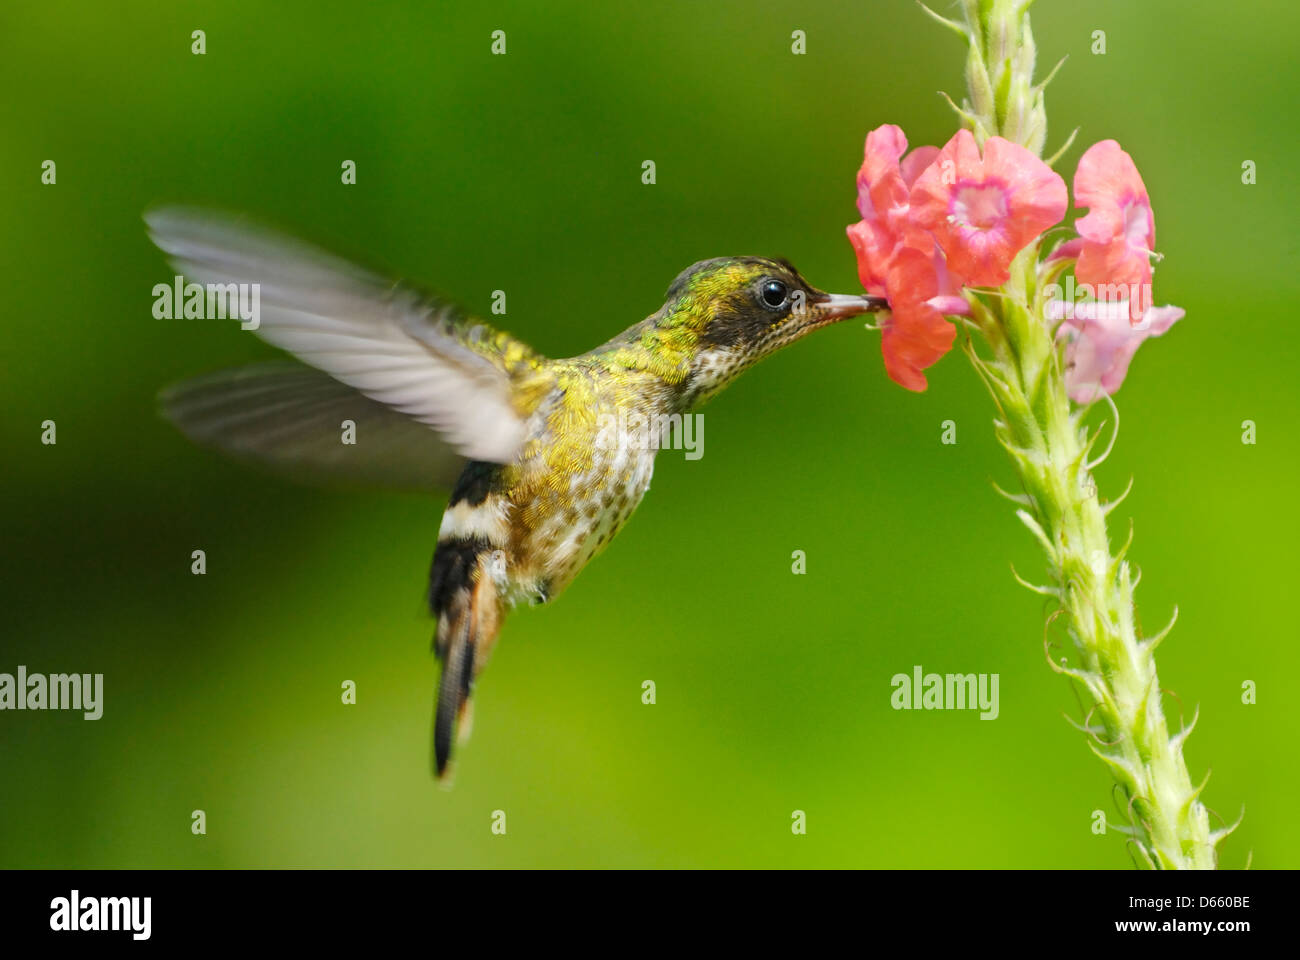 Black-crested Coquette hummingbird (Lophornis helenae) feeding - Stock Image